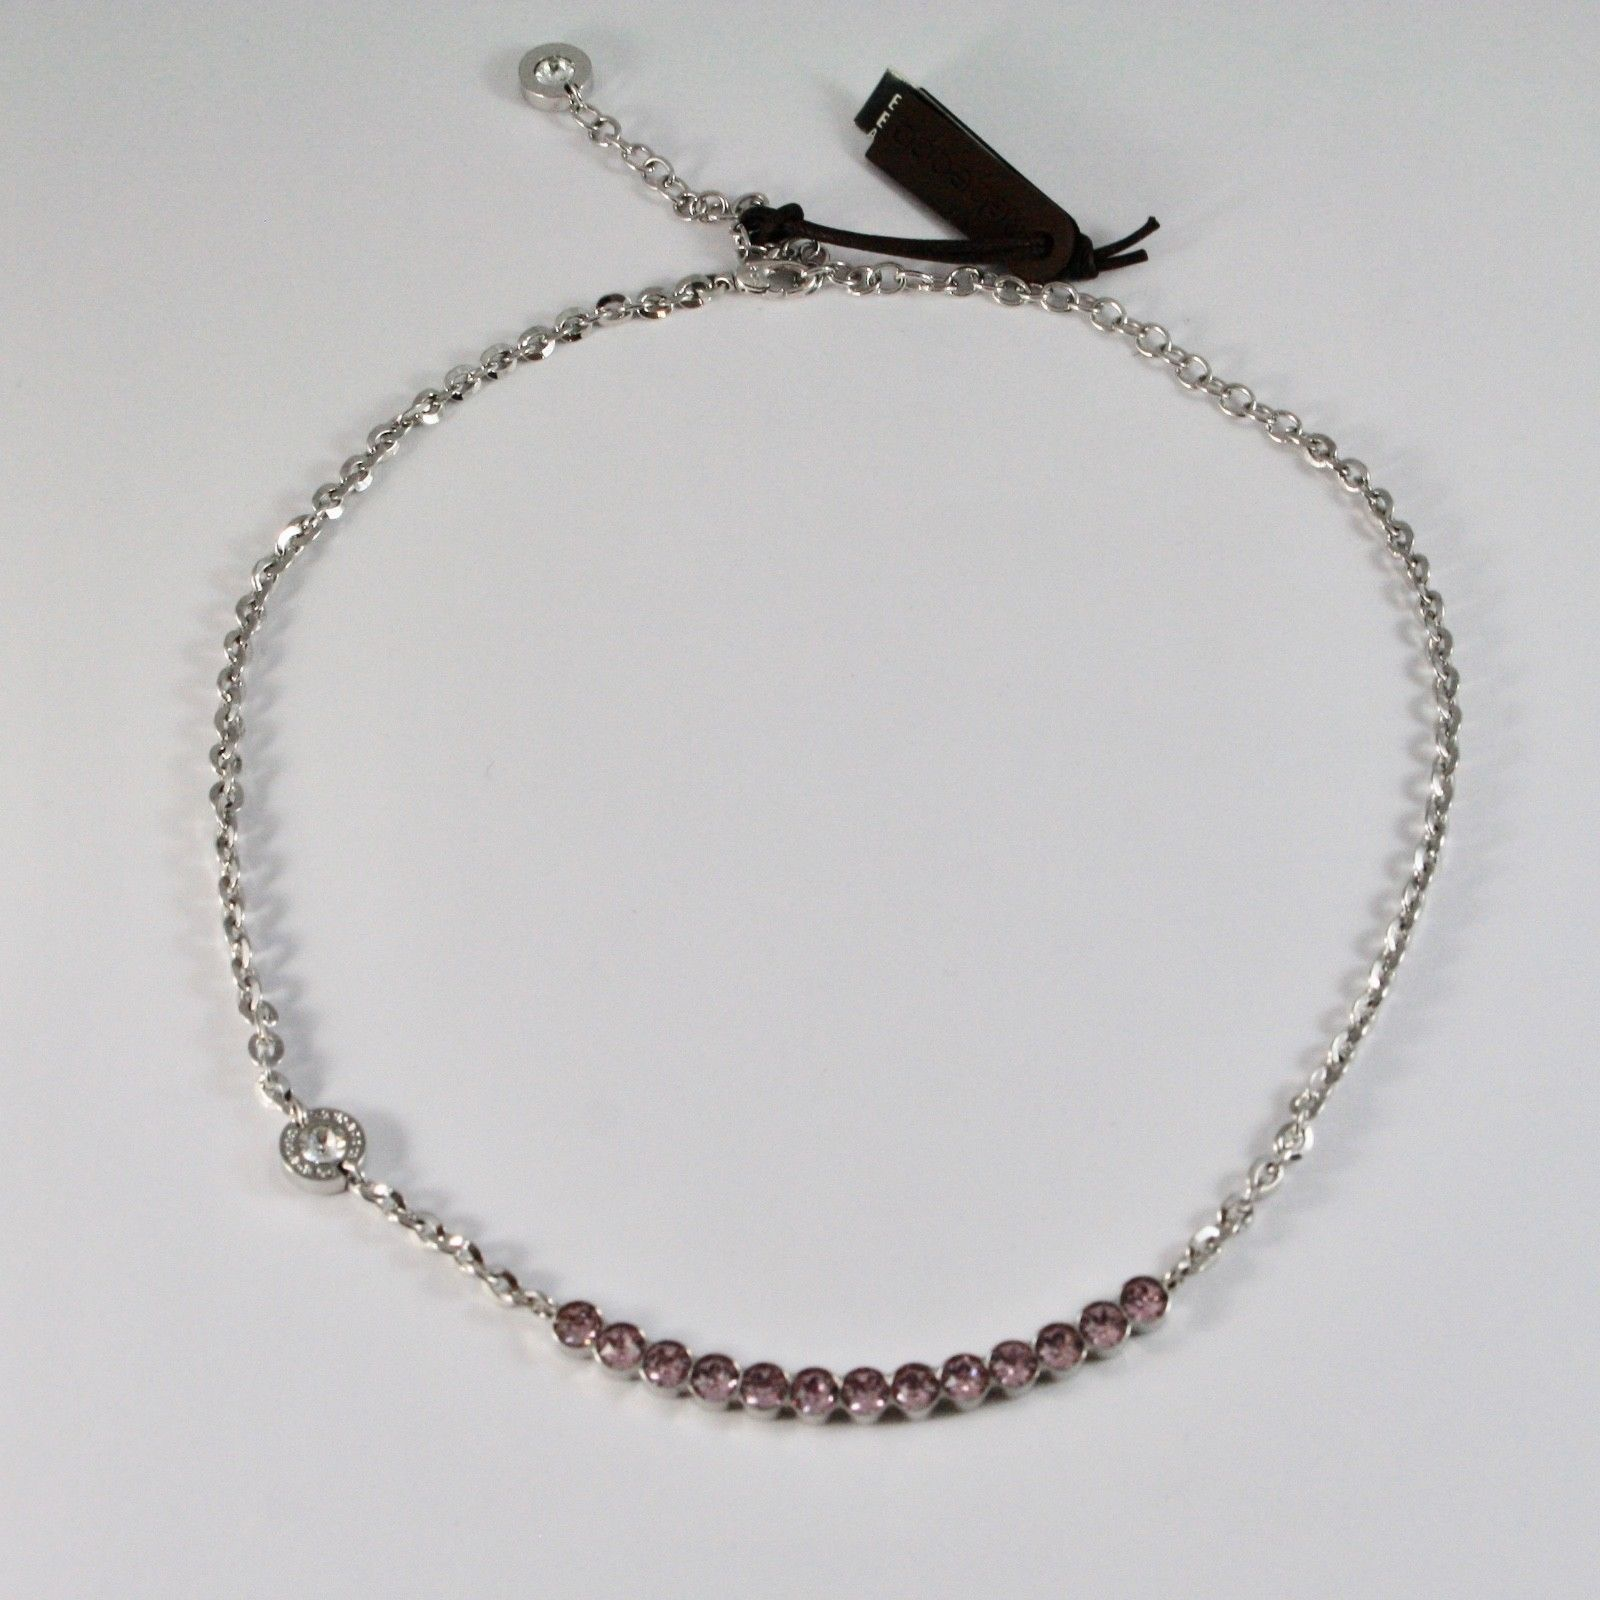 NECKLACE REBECCA BRONZE WITH CRYSTALS PINK BRILLIANT CUT BPBKBA14